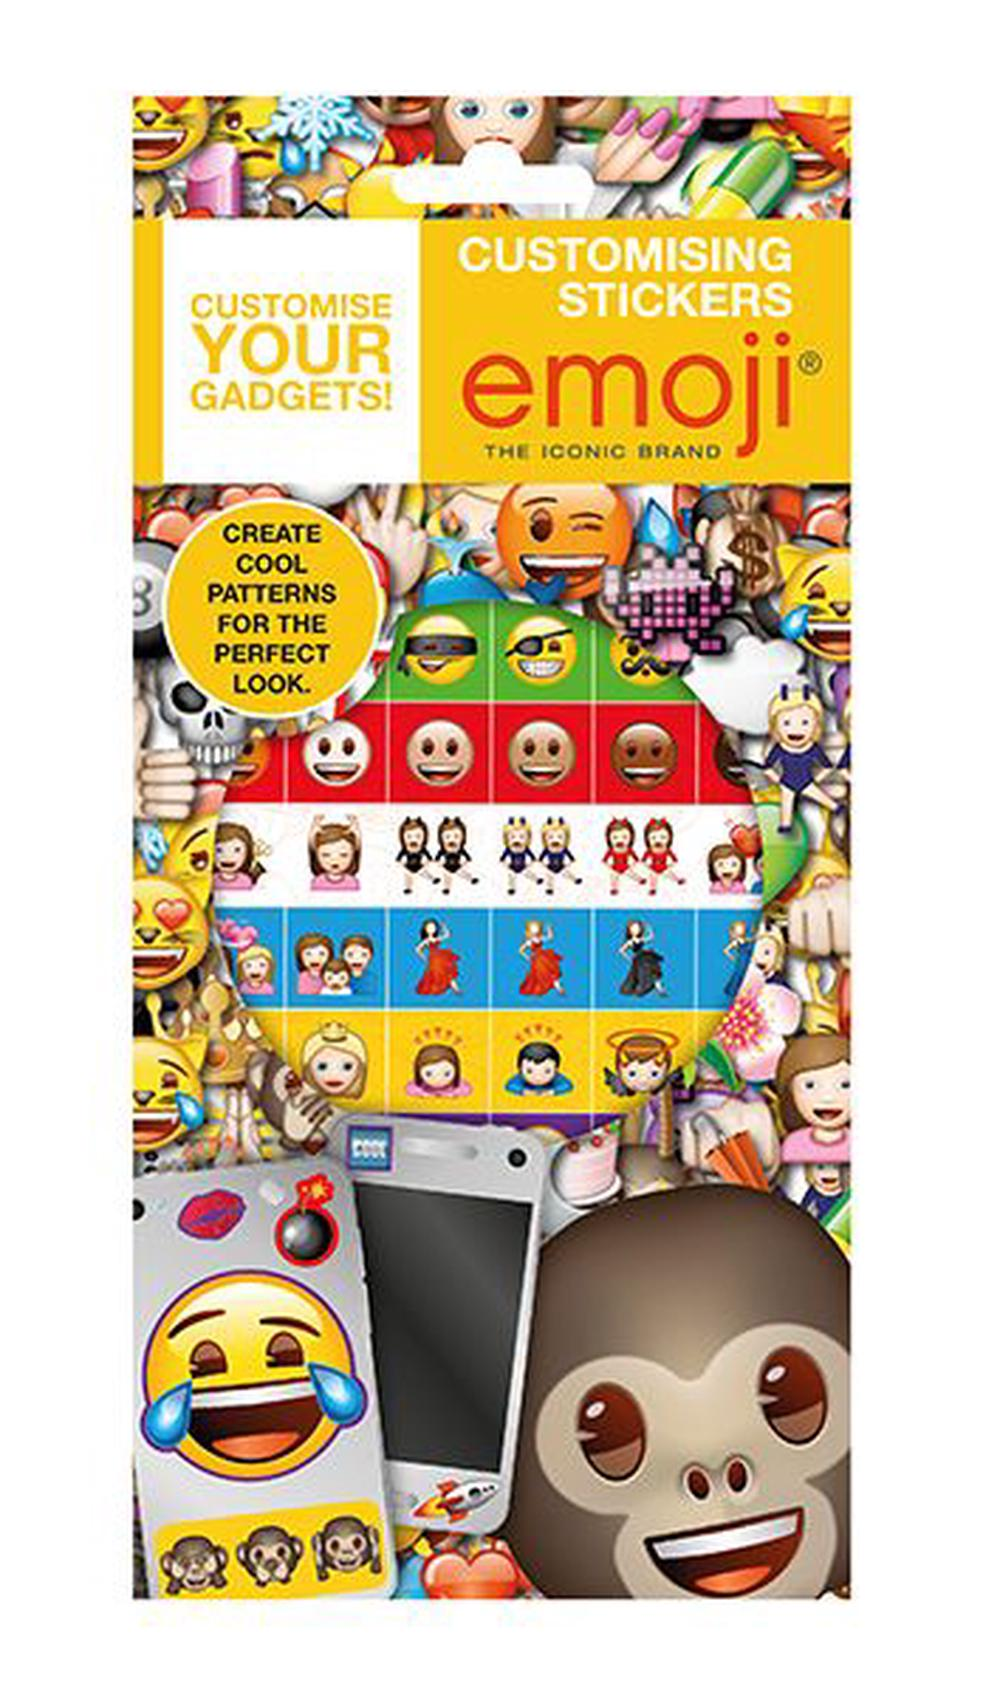 Emoji Customising Stickers | Buy online at The Nile